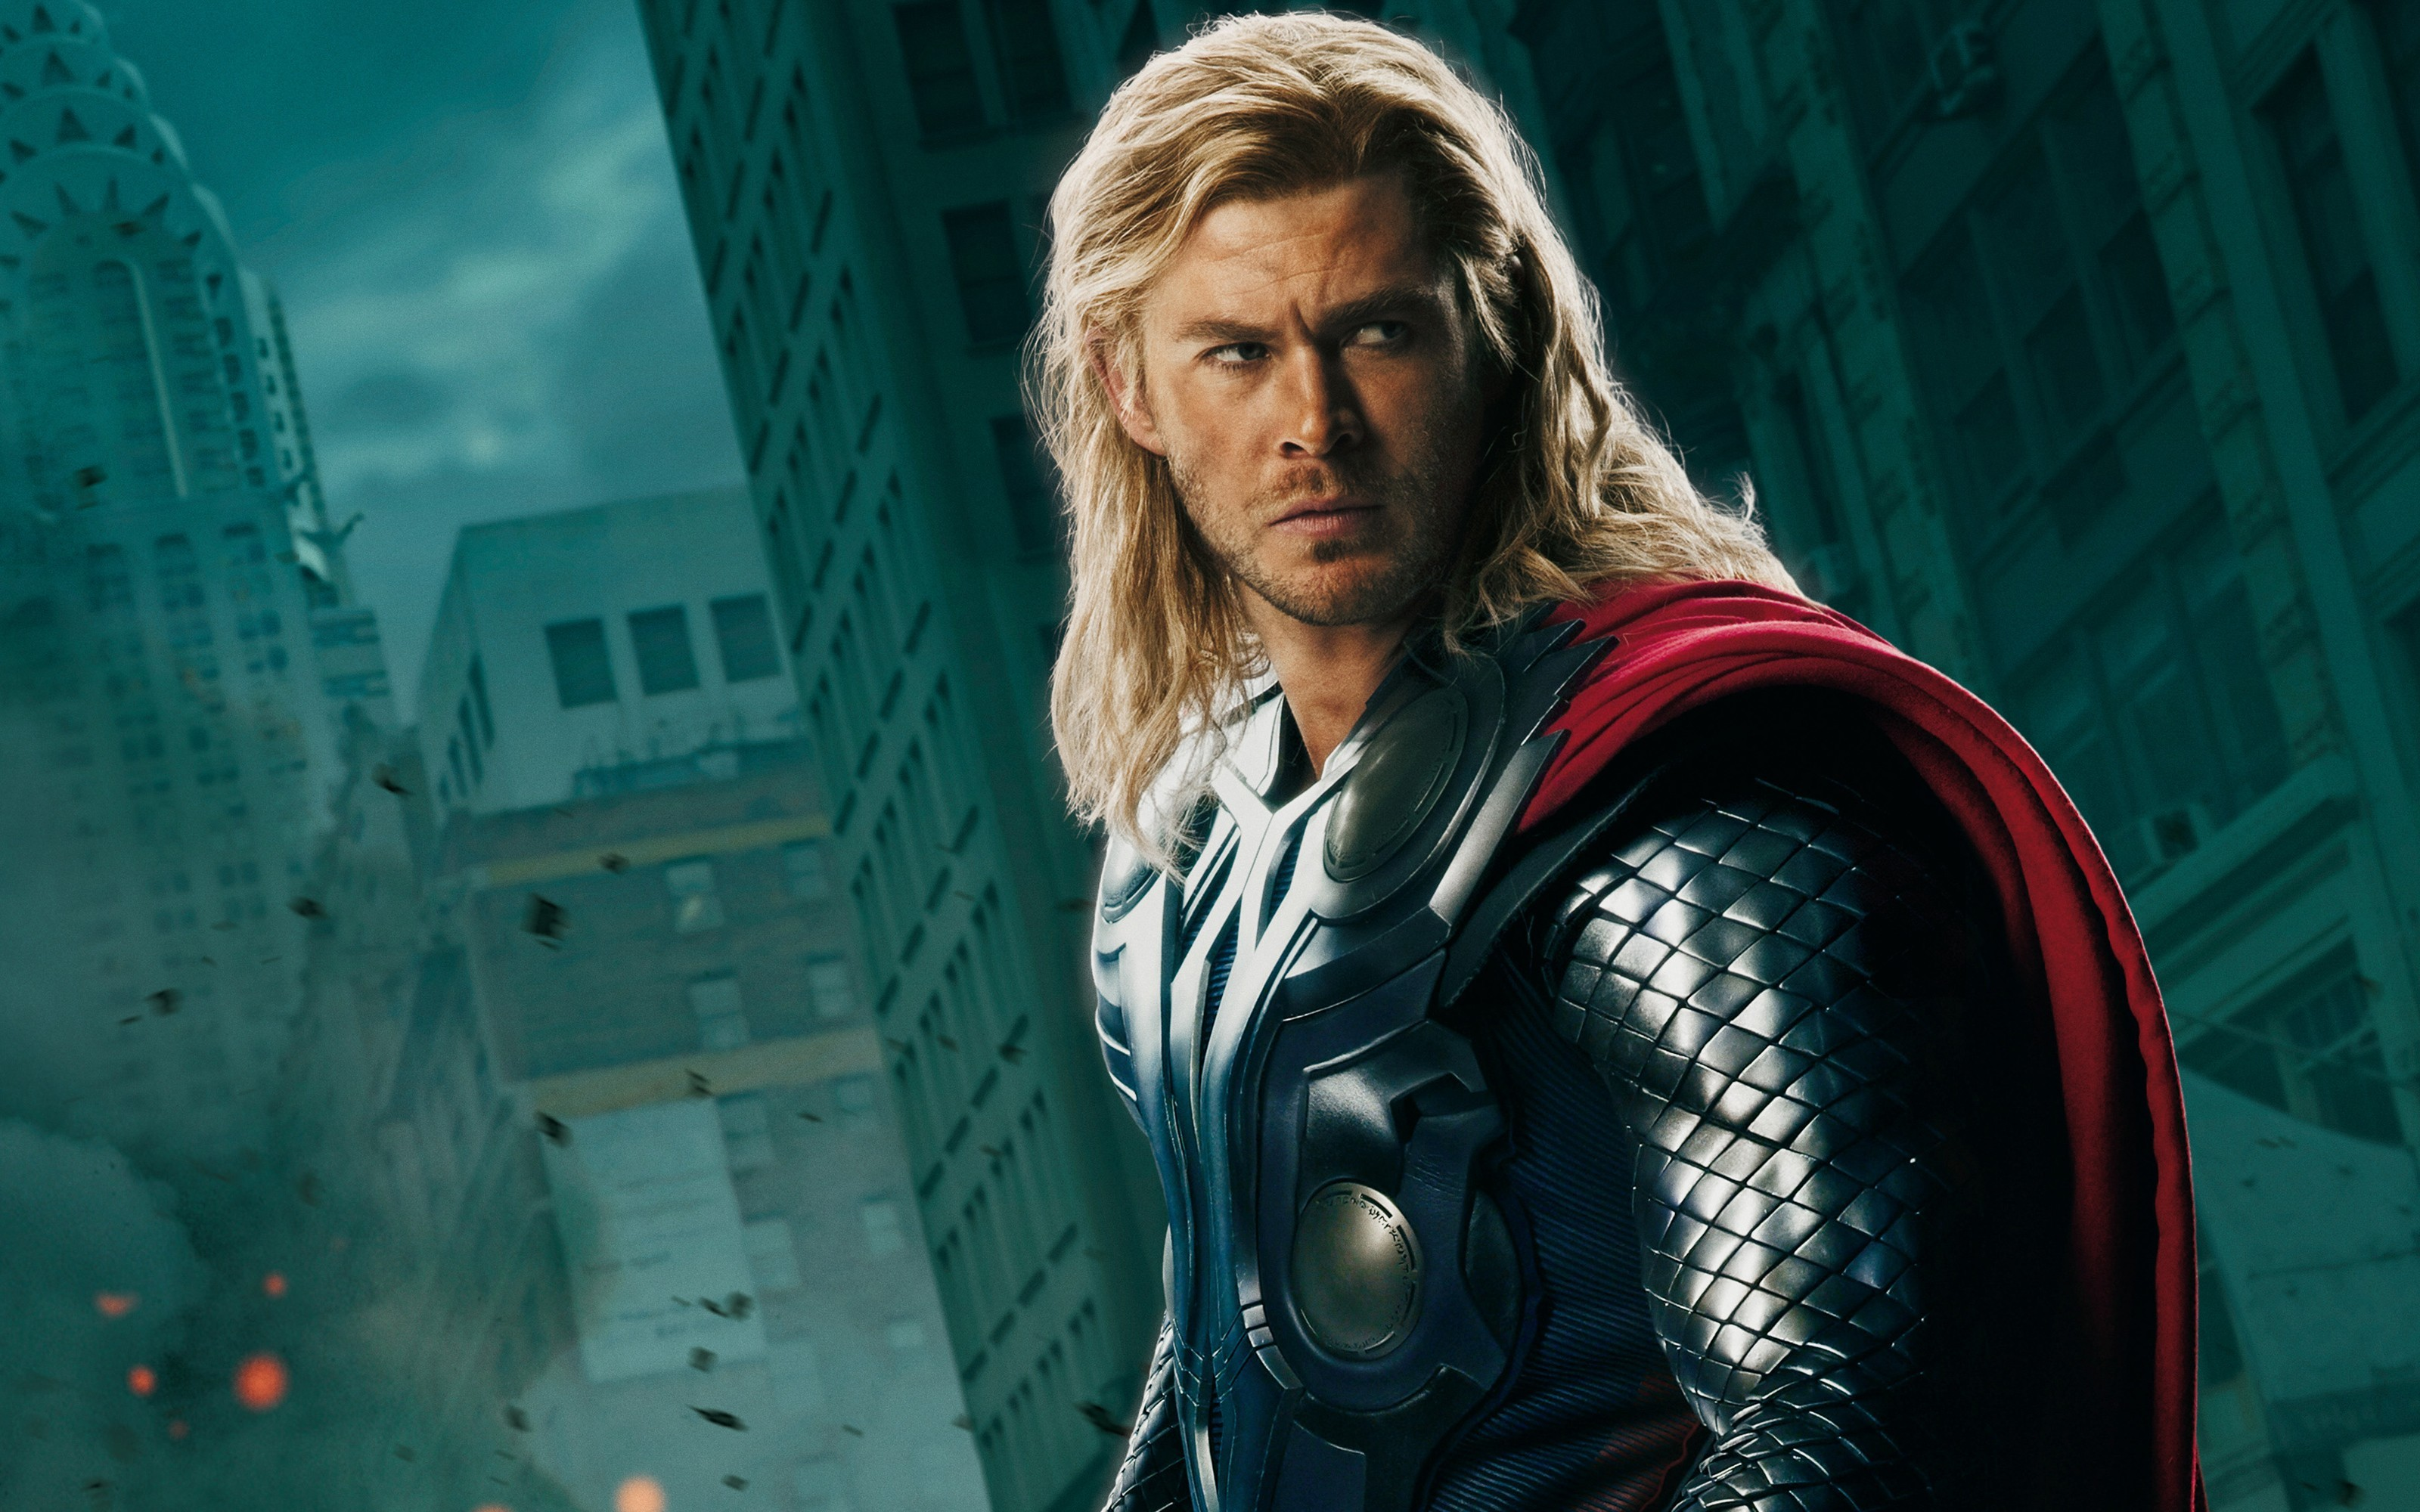 Chris Hemsworth The Avengers Movie Thor Wallpaper